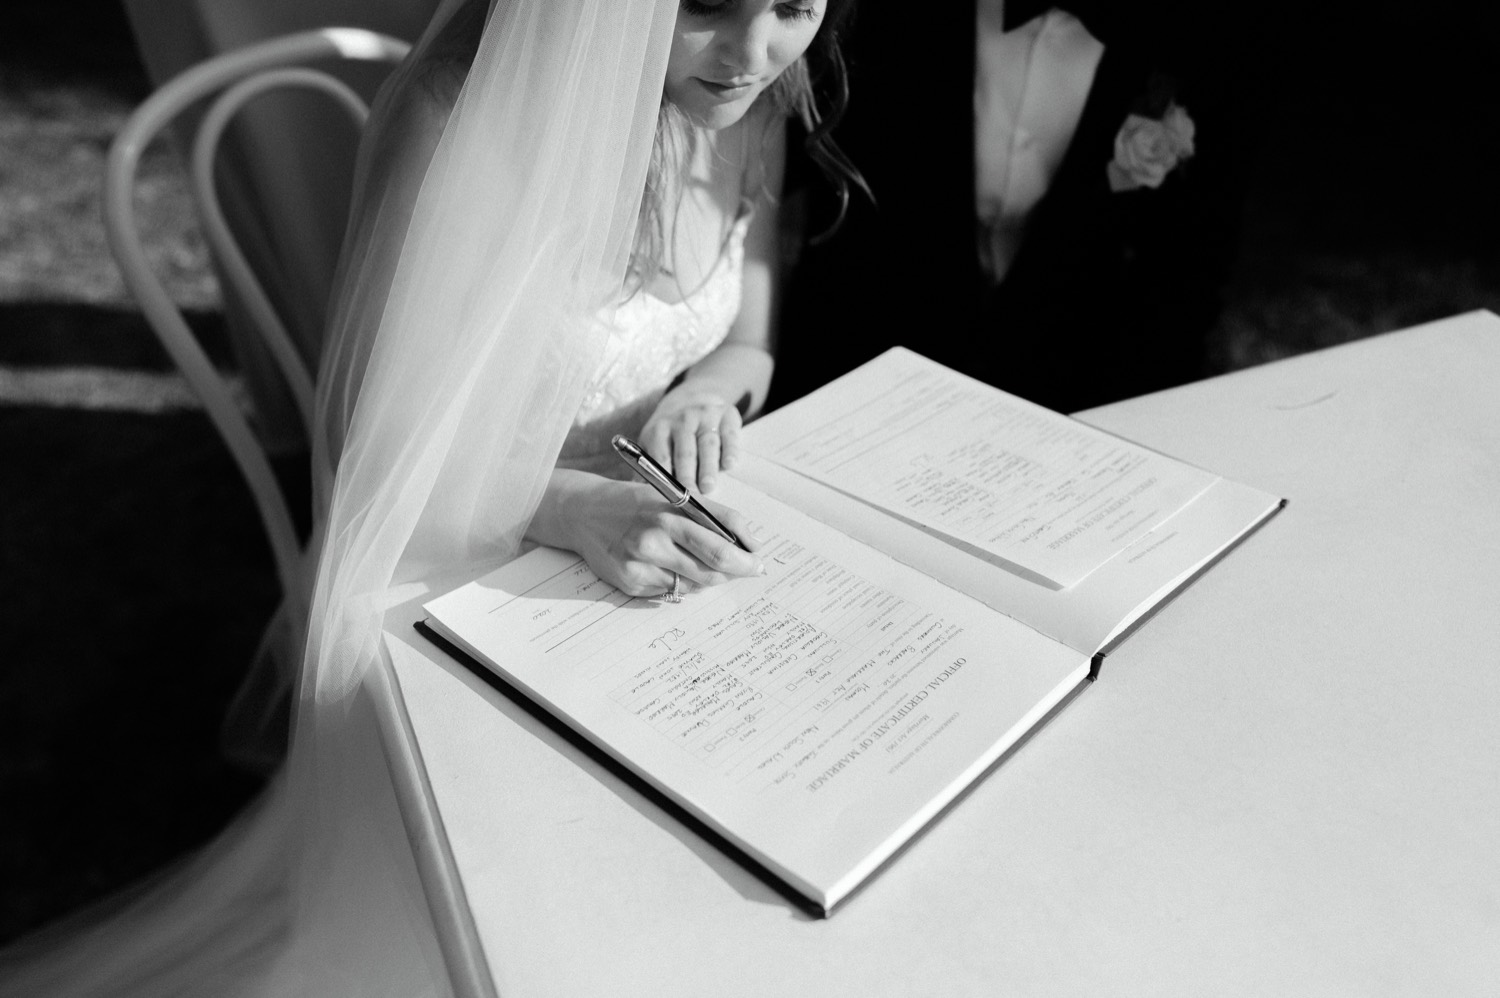 arty shot of bride signing wedding certificate